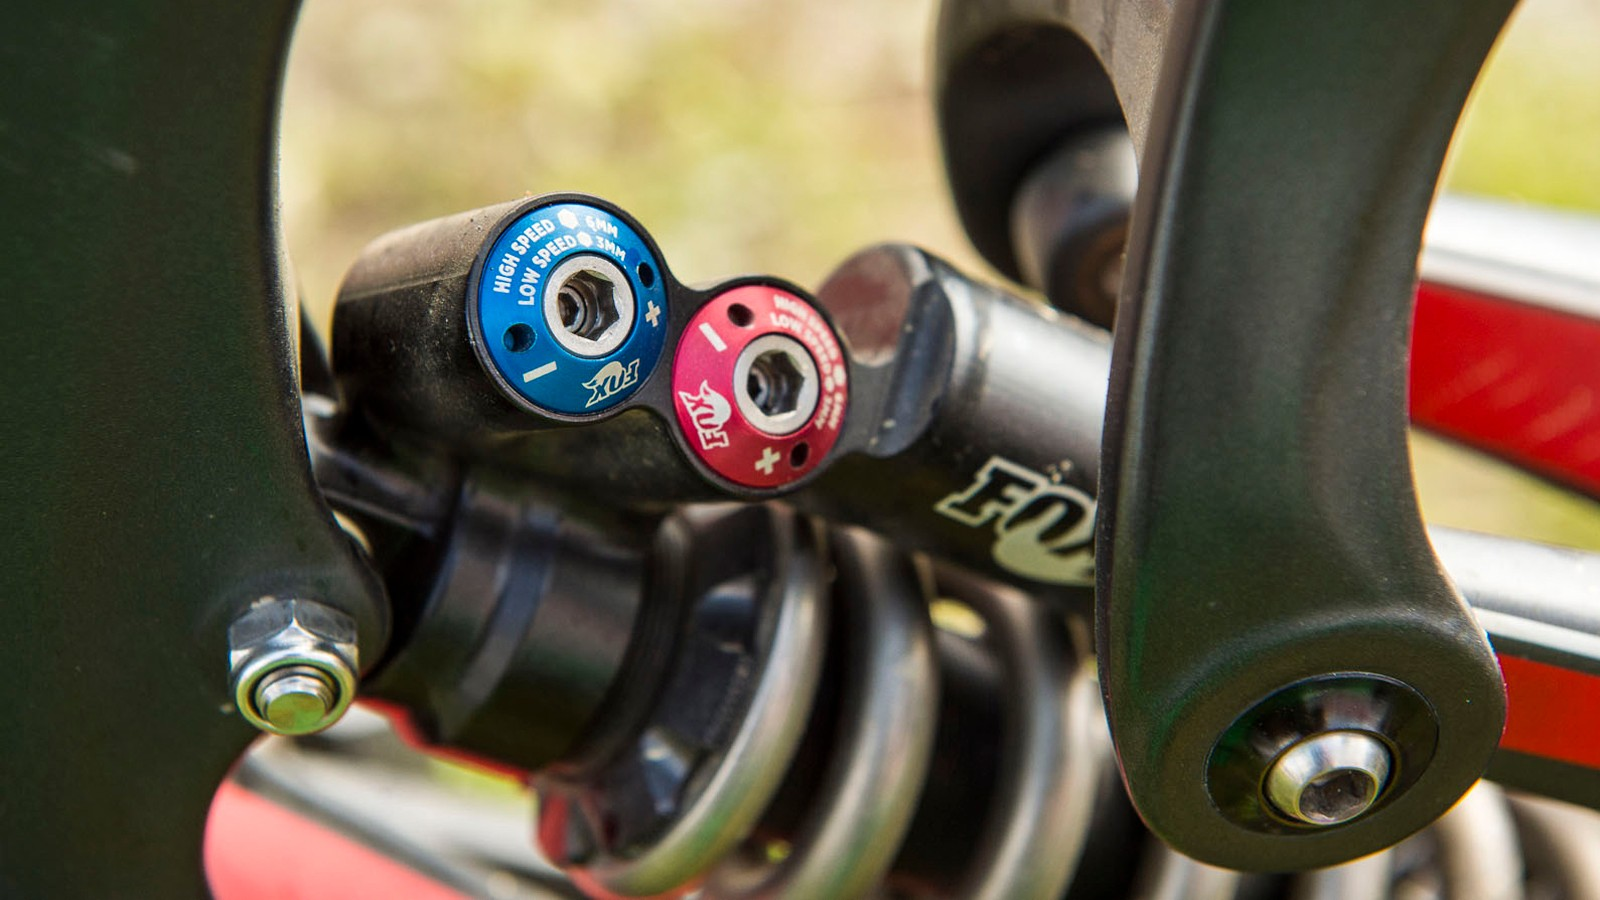 The RAD offers more adjustment than any other Fox shock. It features both high- and low-speed compression and high- and low-speed rebound adjustment. All adjustments need either a 6mm or 3mm Allen key